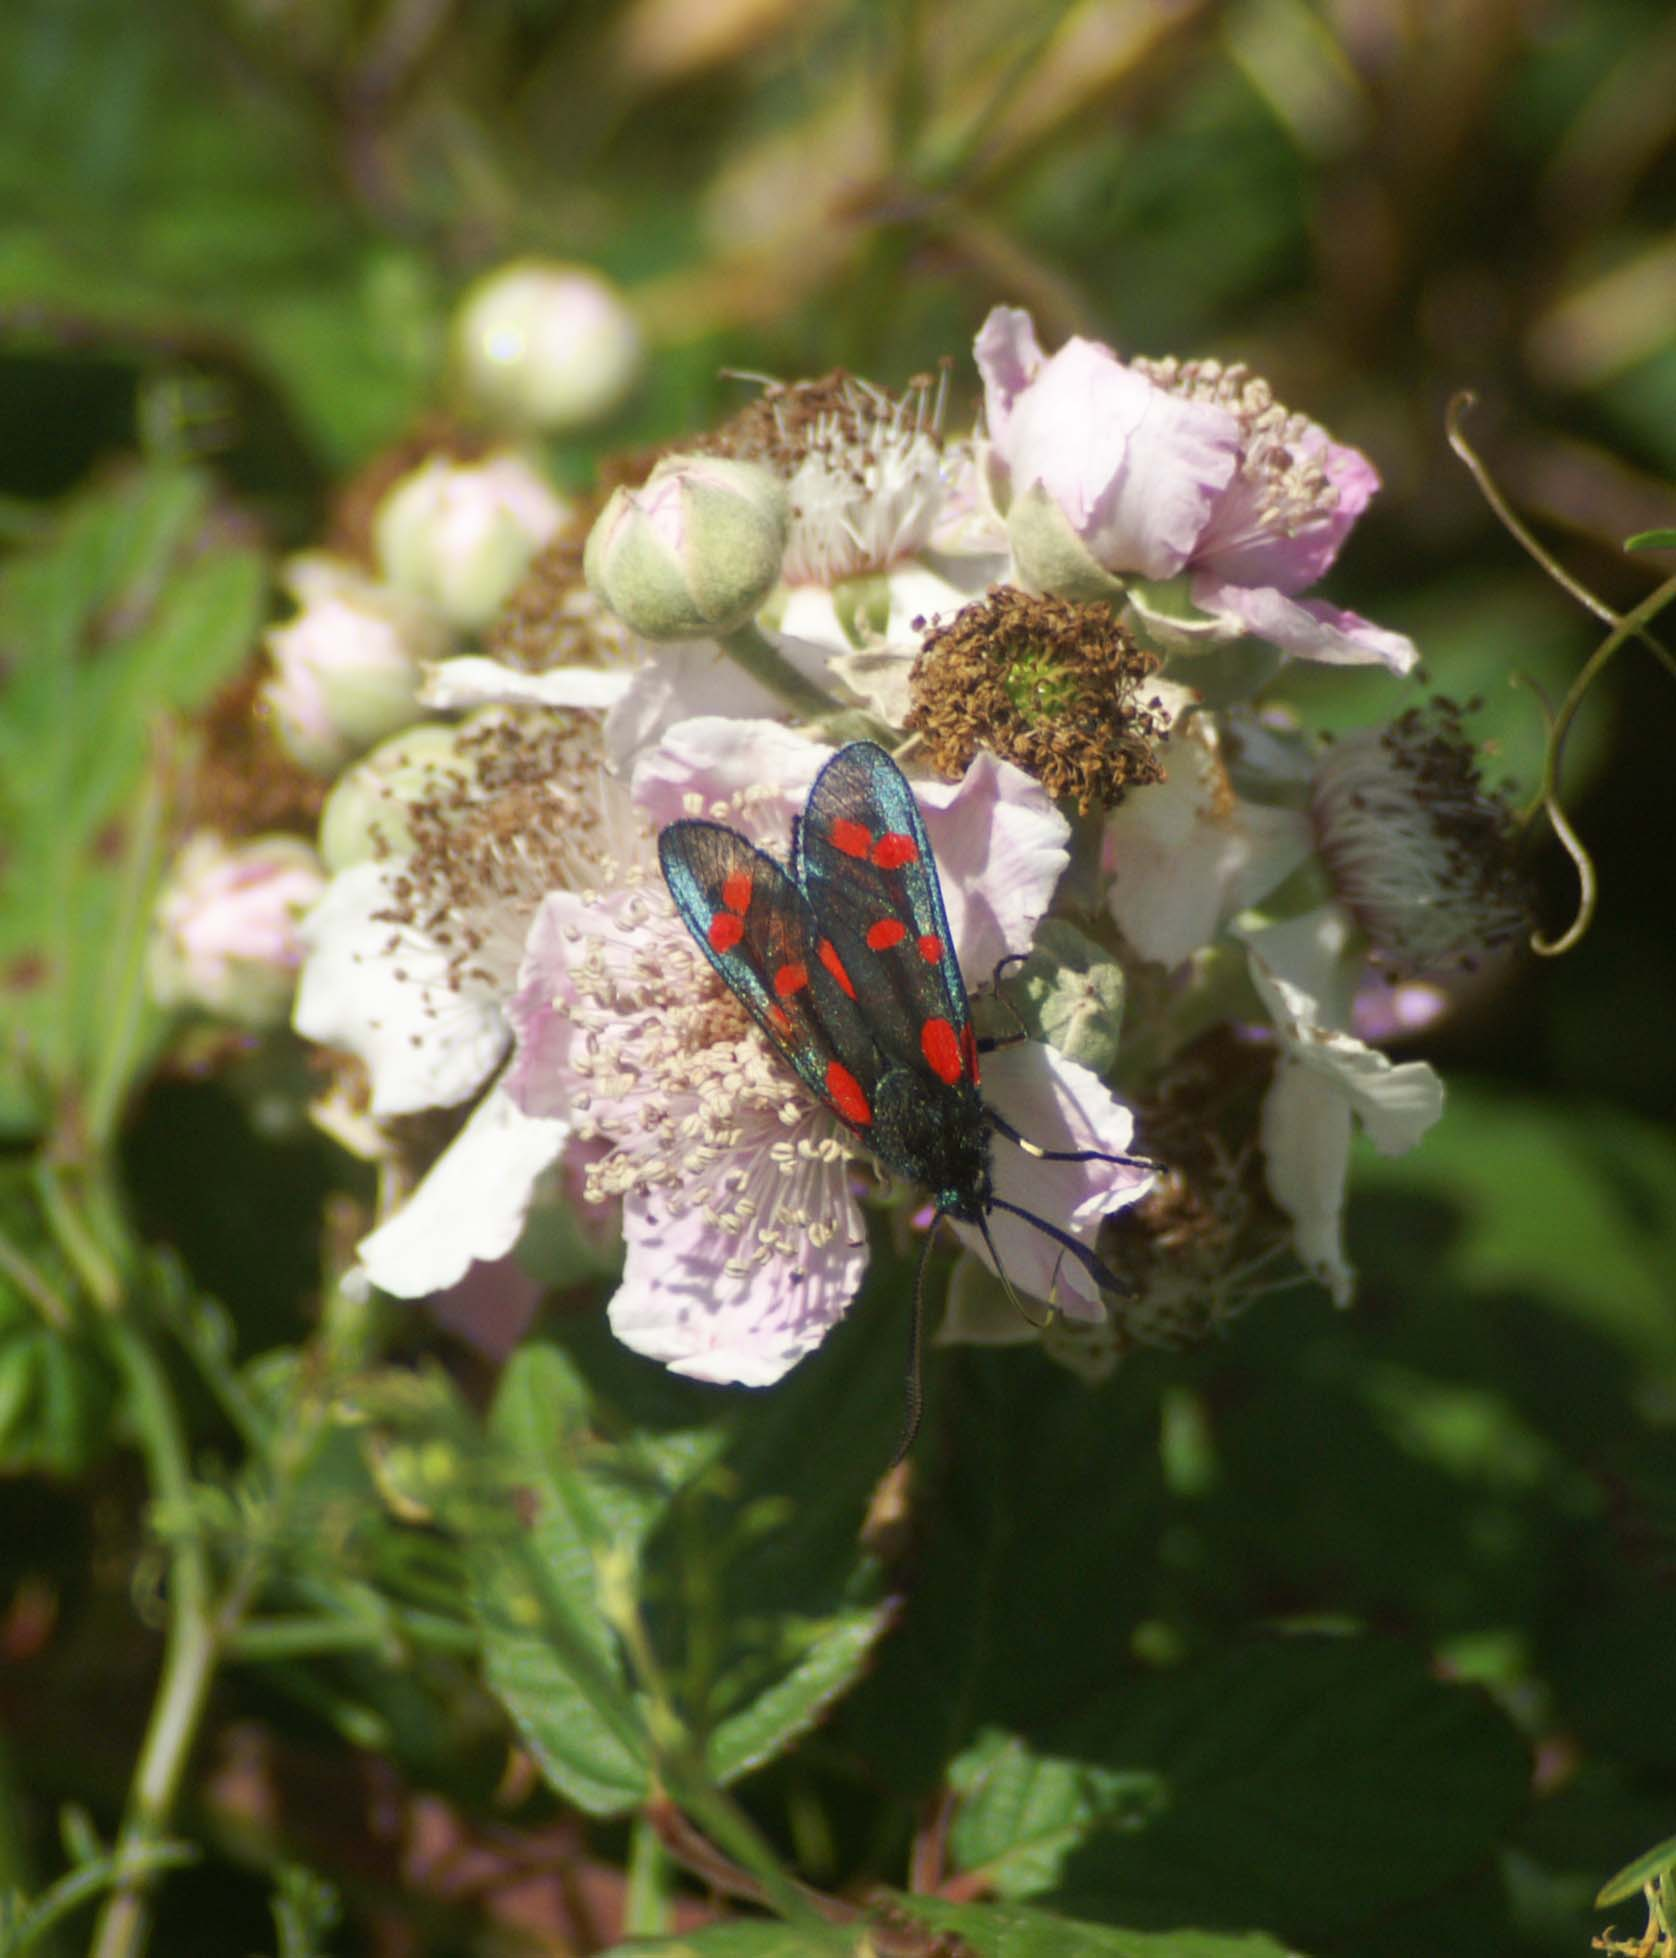 insects feeding on bramble flowers | everyday nature trails